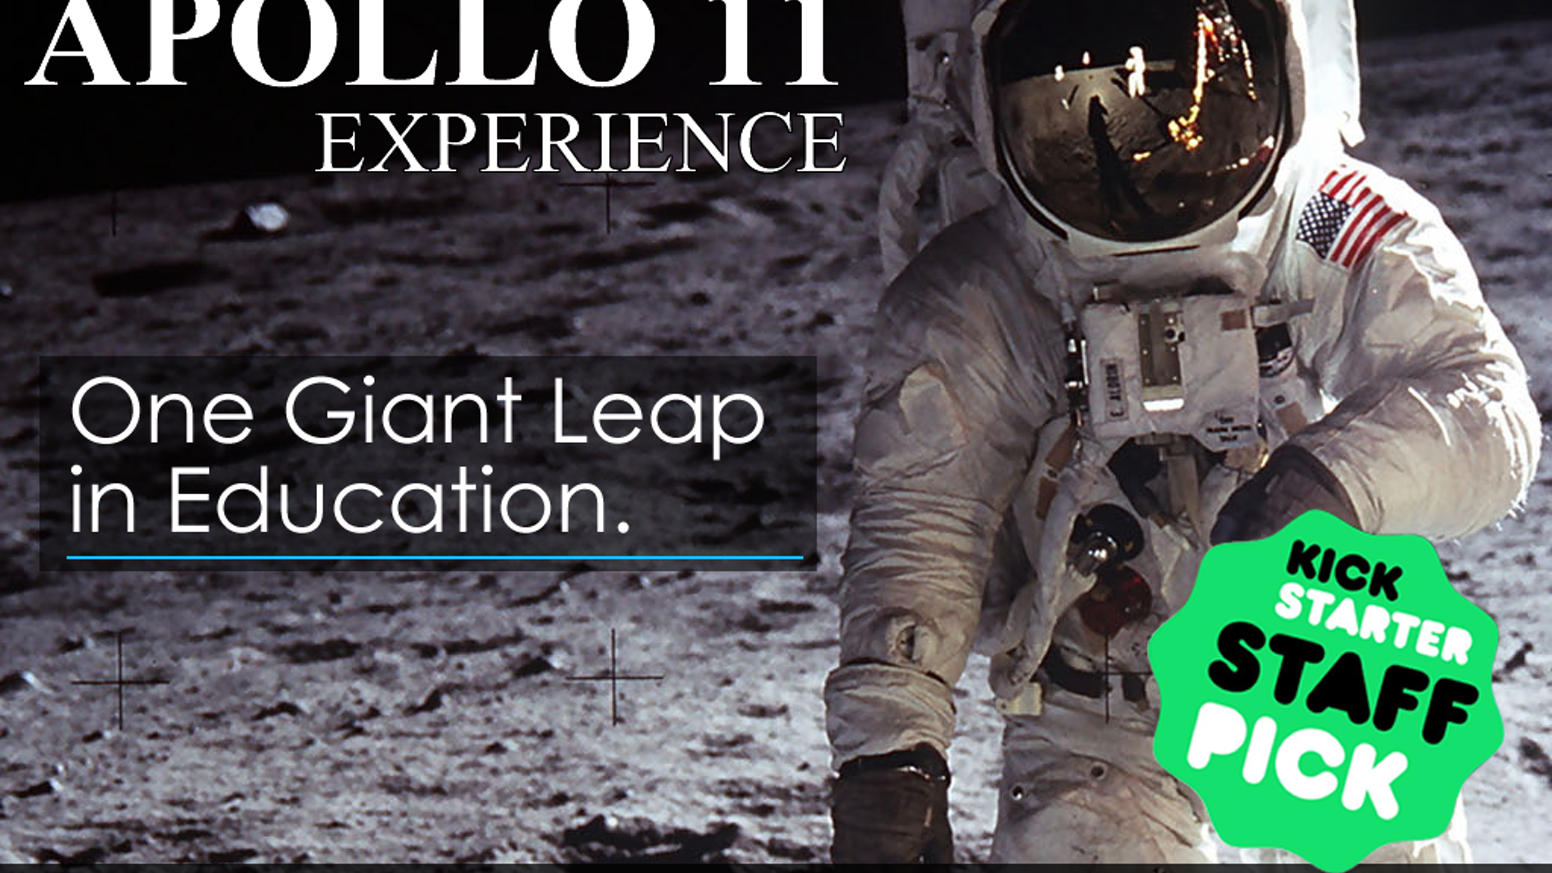 Using Virtual Reality you will become Neil Armstrong on what is the 20th century's most enduring achievement.